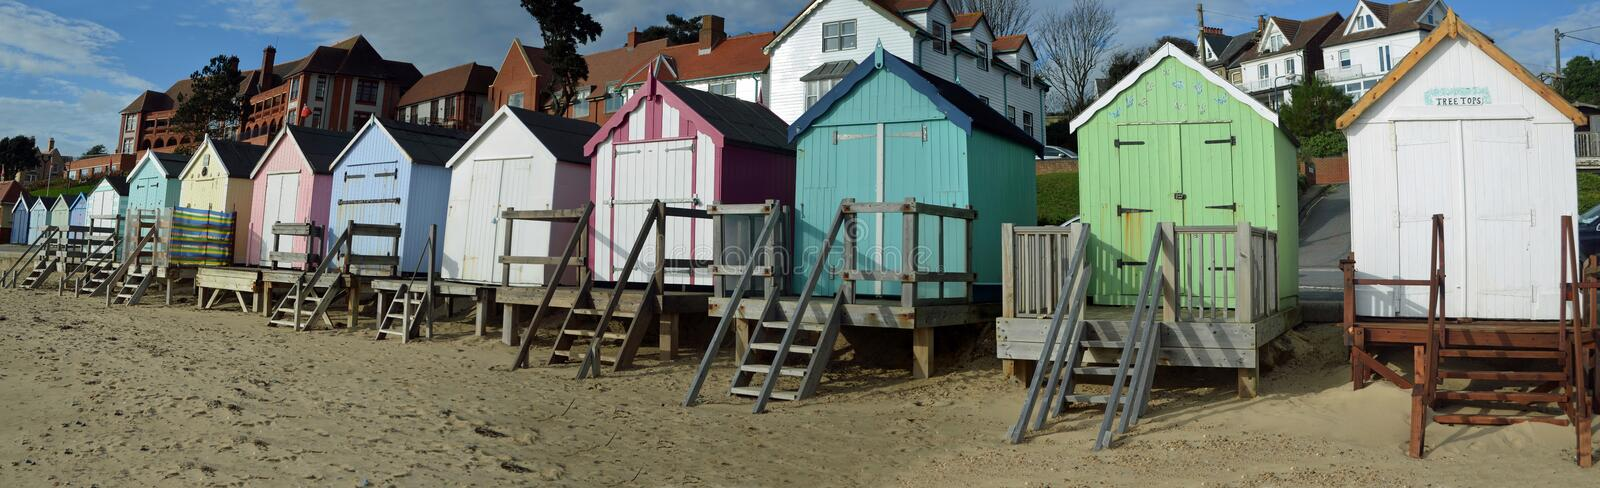 Beach huts panorama Felixstowe seafront stock images